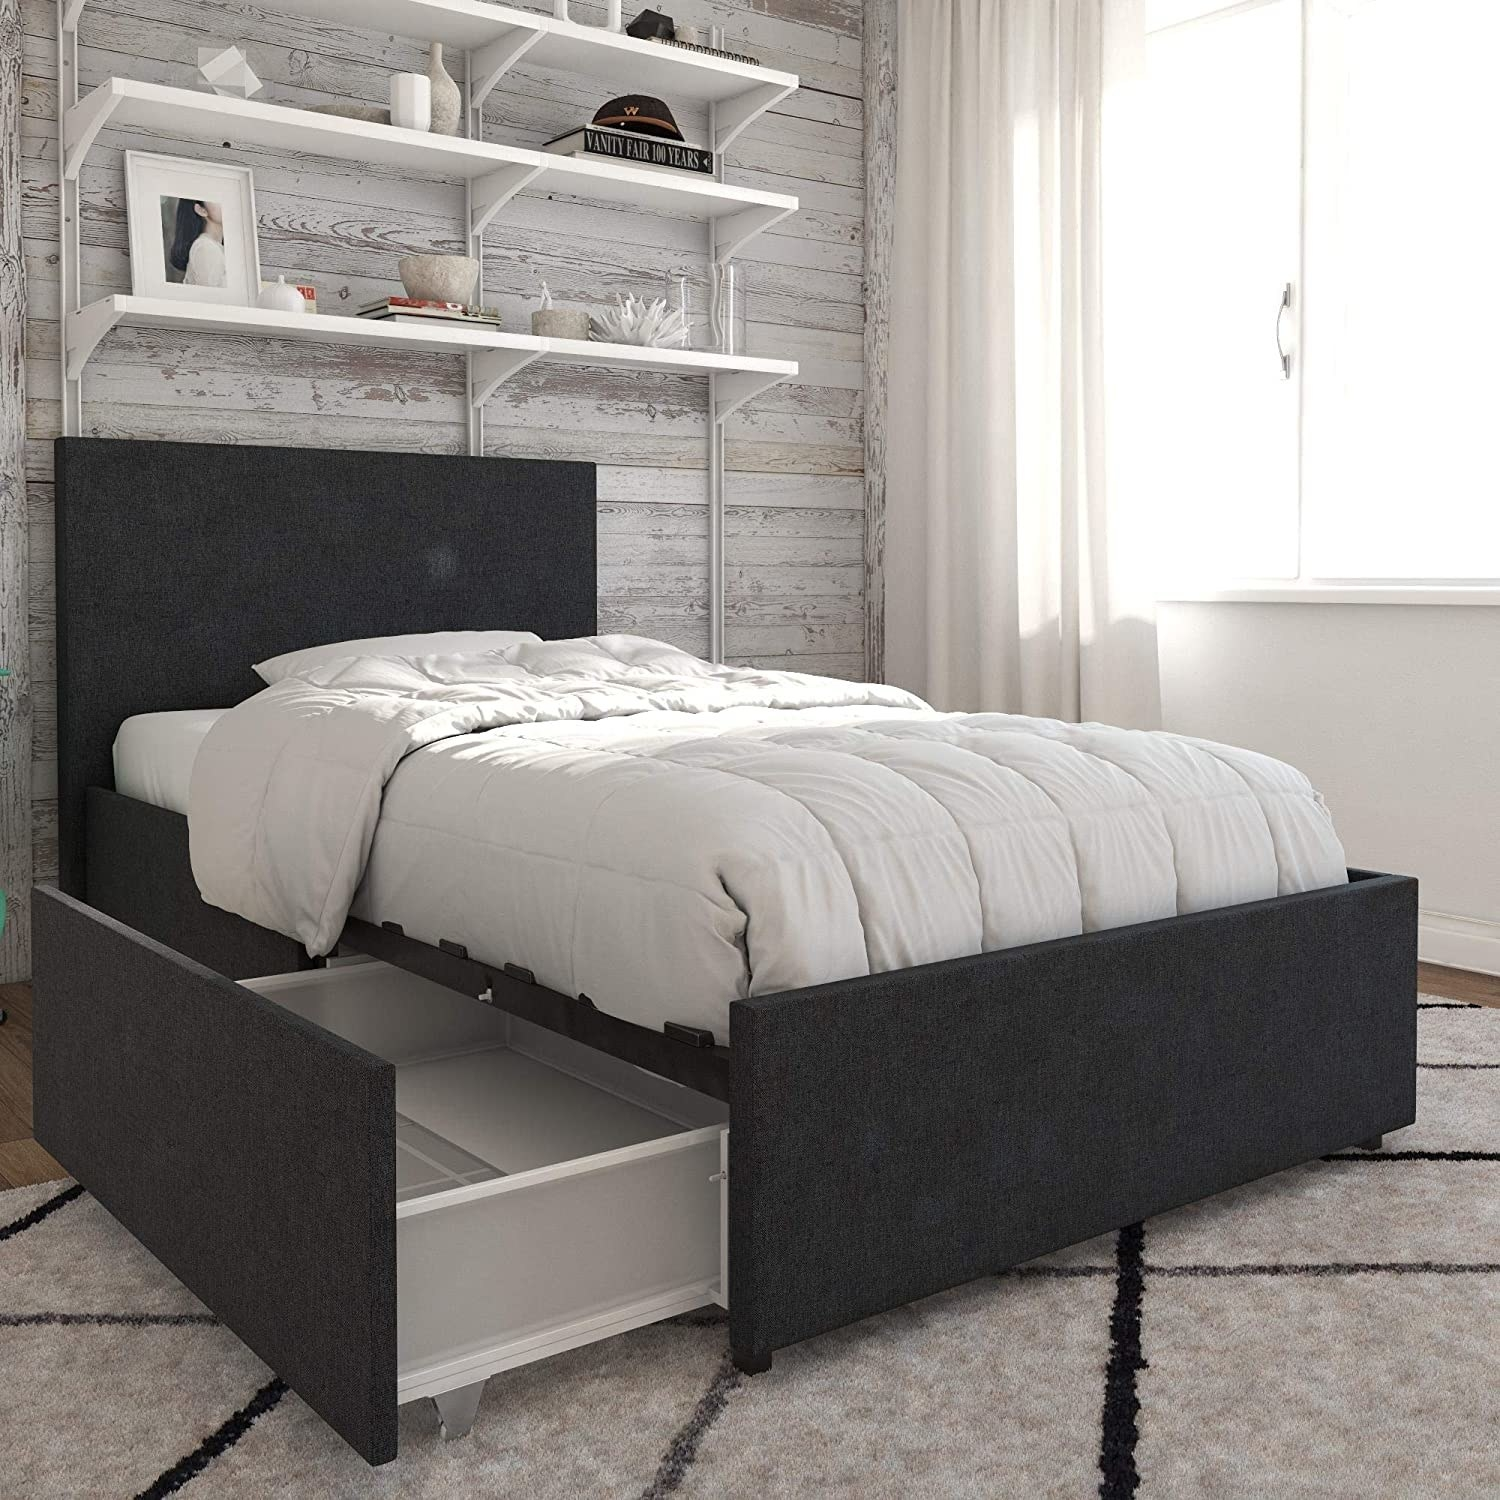 The bed with a drawer pulled out